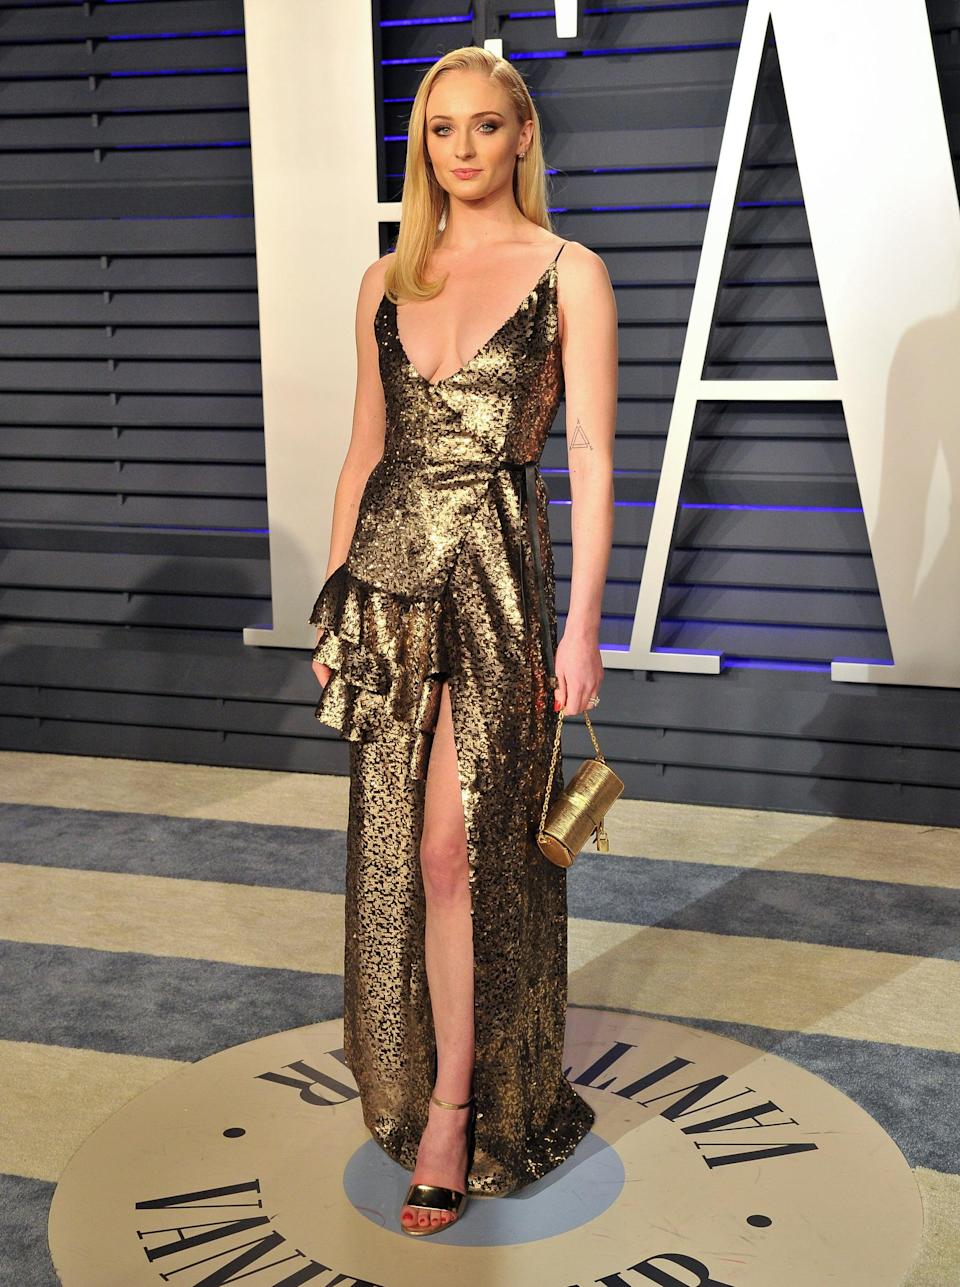 <p>Sophie accessorized this gold-sequined, ruffle-tier Louis Vuitton wrap dress with a cylinder miniaudière from the brand and metallic heels at the Vanity Fair Oscars party in 2019.</p>